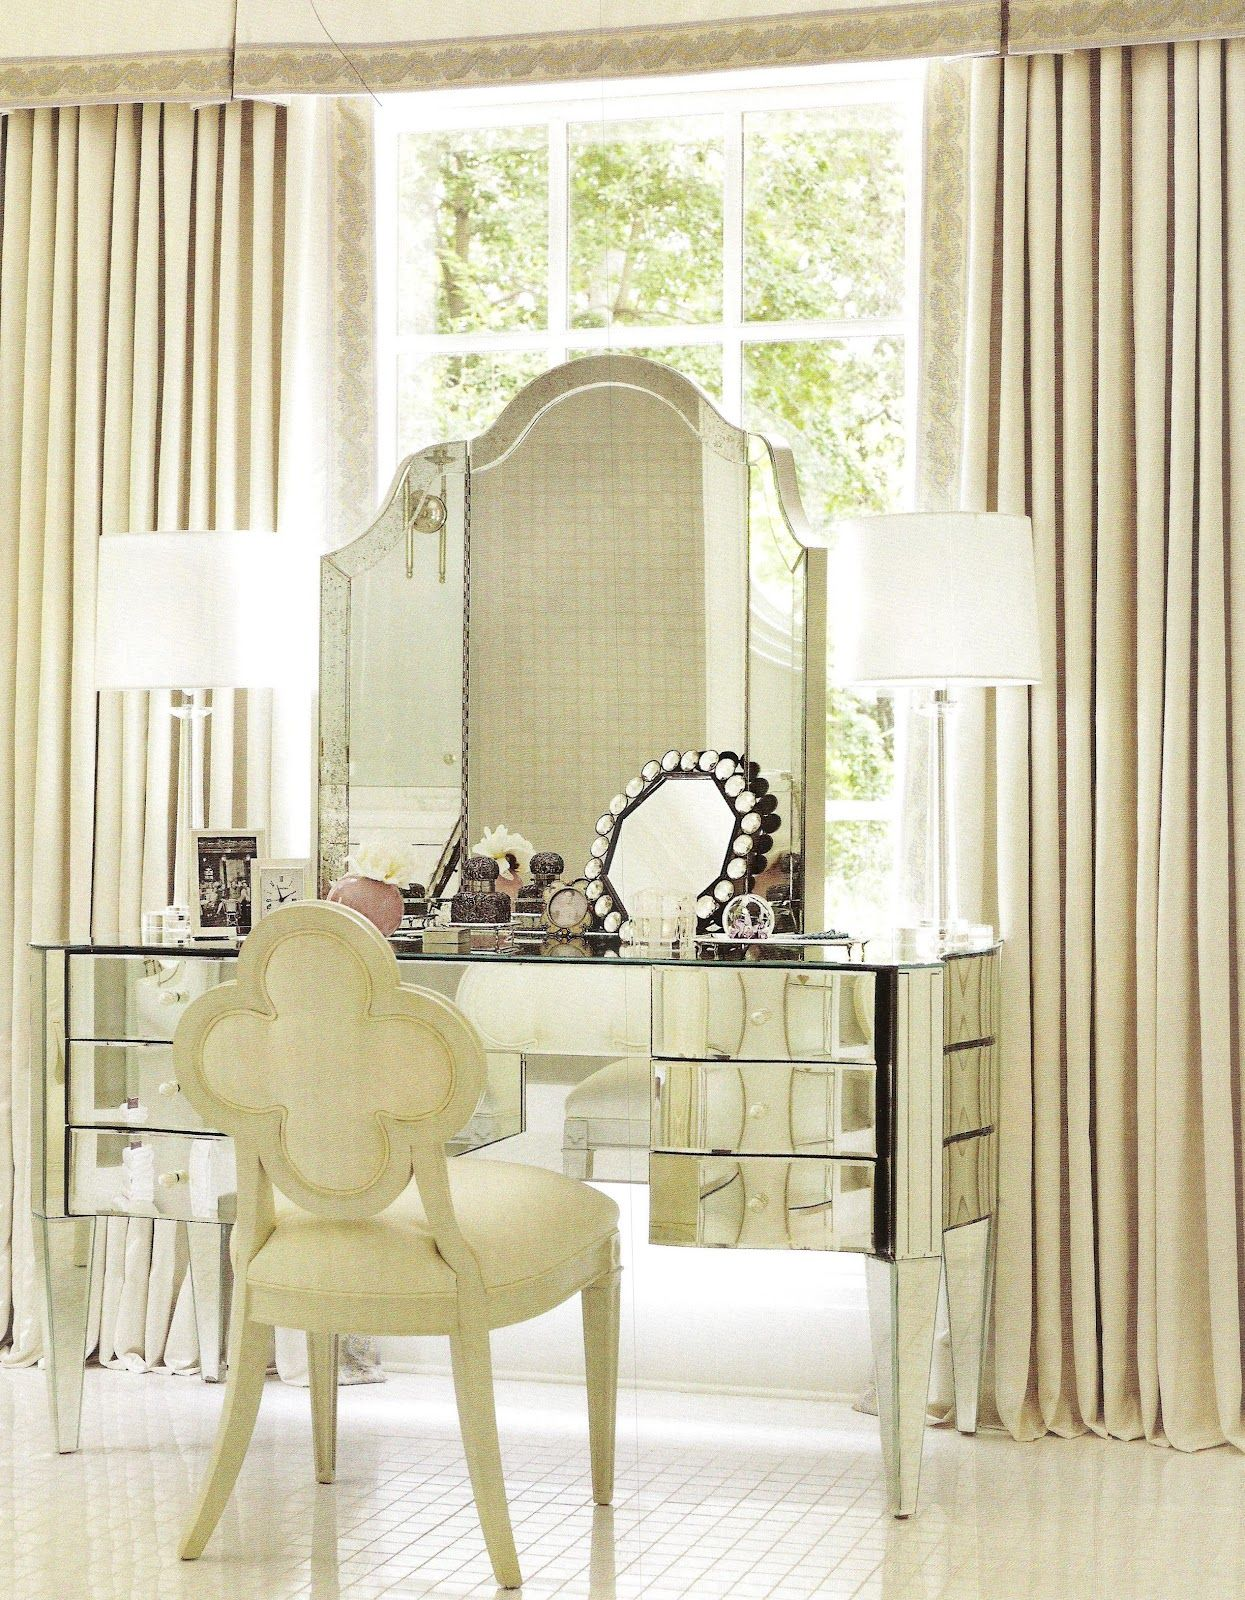 In The Home Of Suzanne Kasler. The Dressing Table In The Master Bath Is By  Nancy Corzine, As Is The Mirror; The Chair Is A Suzanne Kasler Design For  Hickory ...